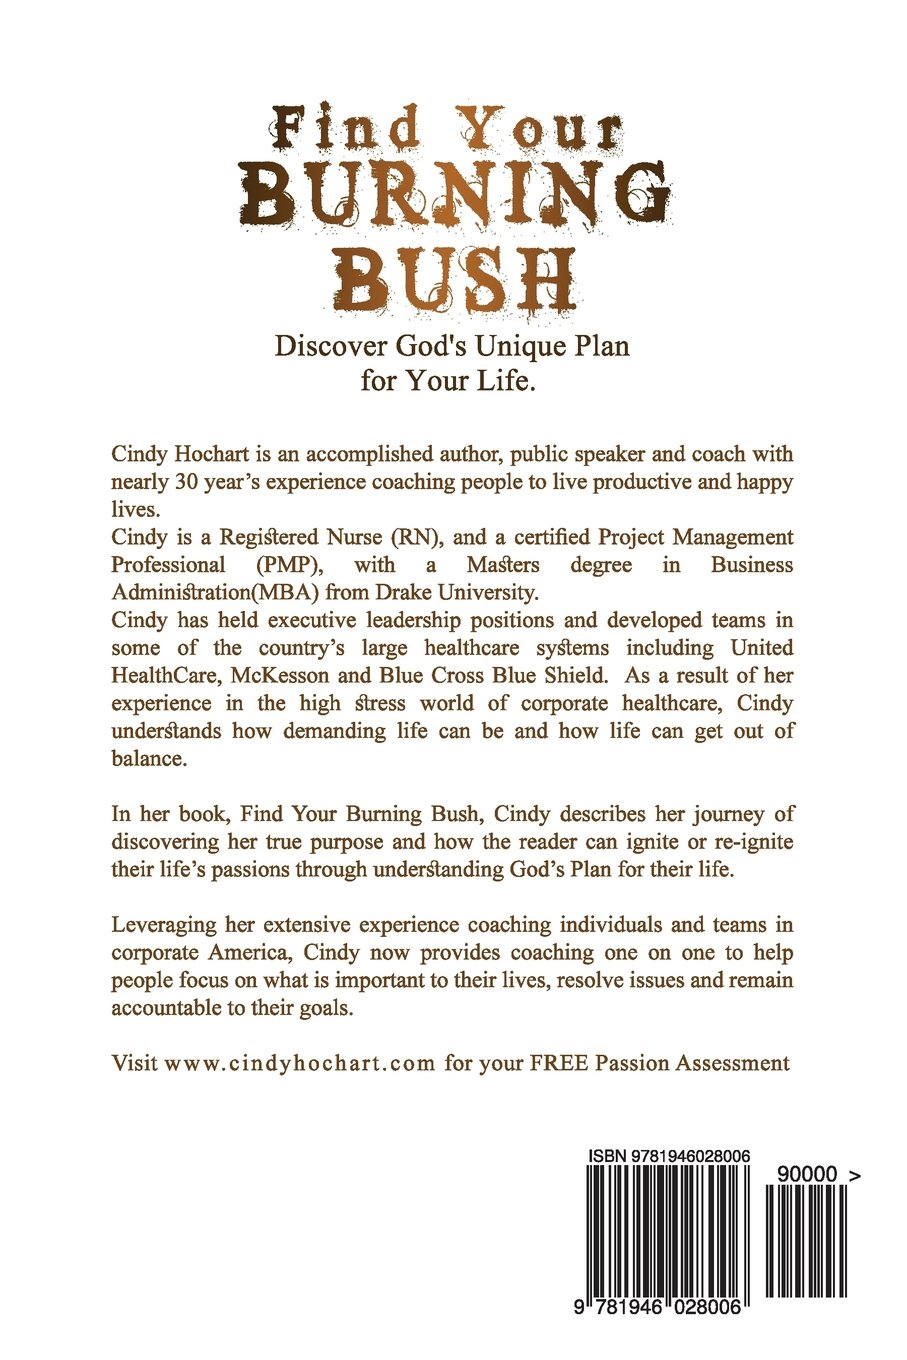 find your burning bush discover god u0027s plan for your unique life